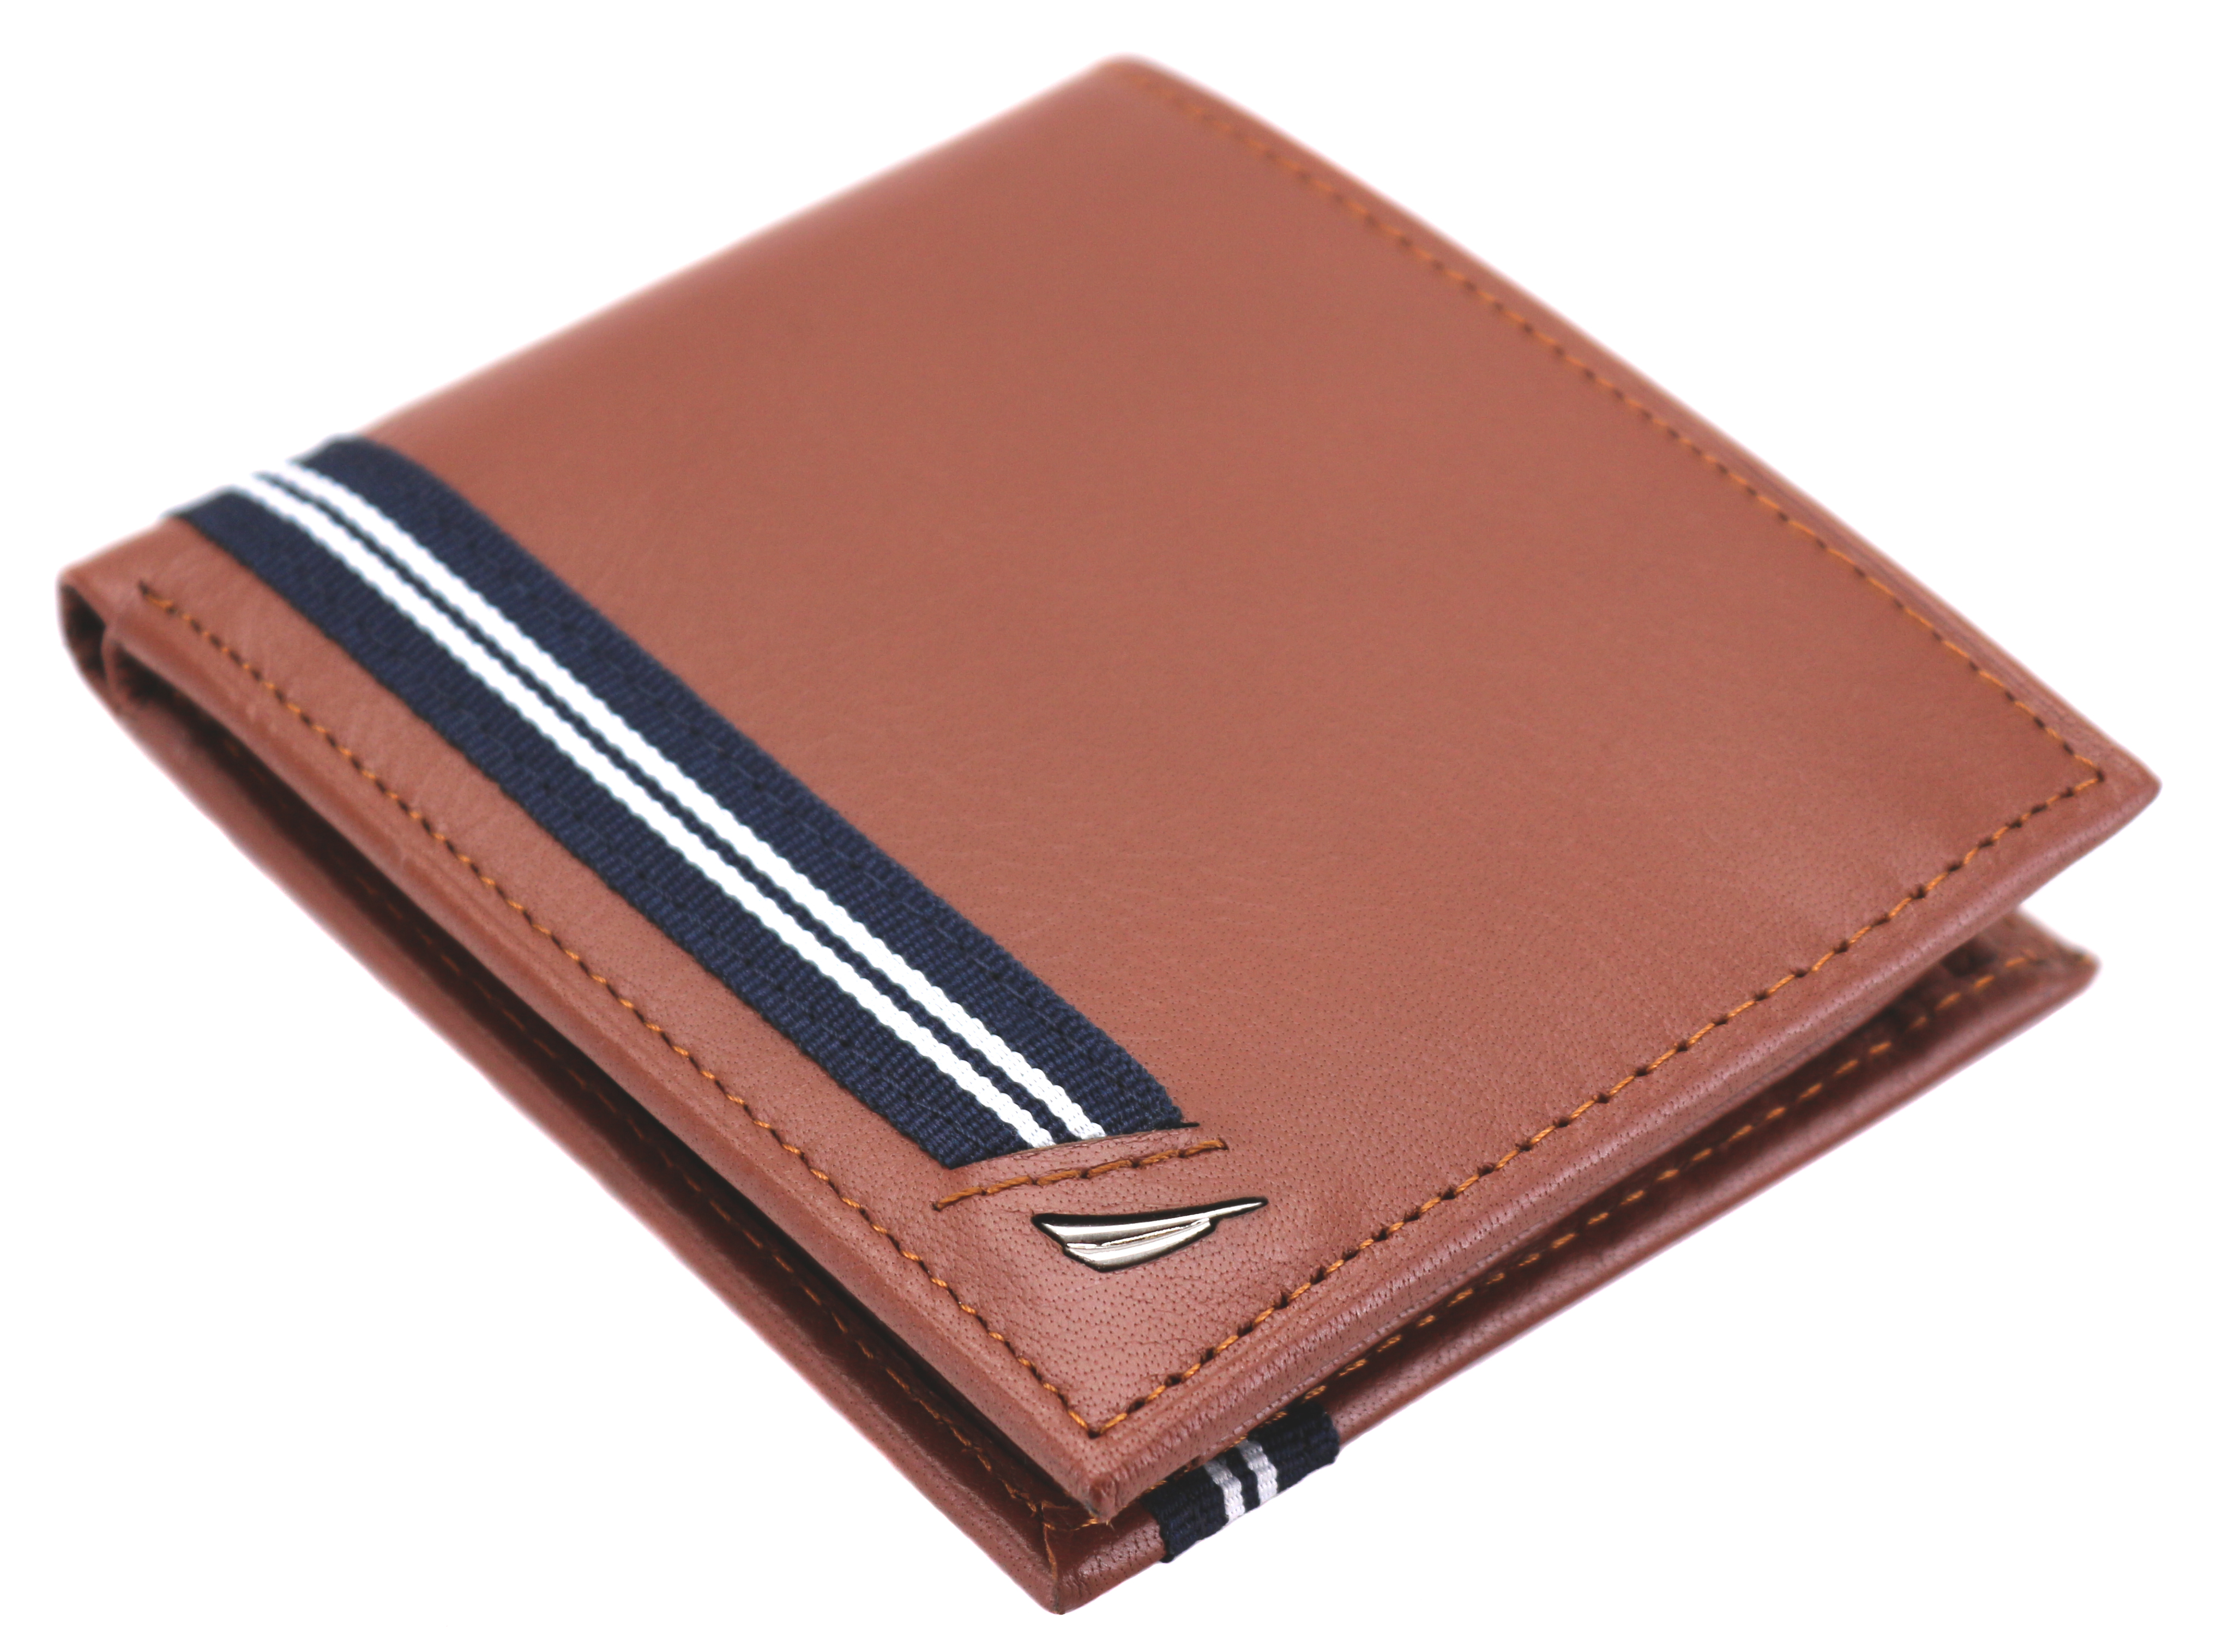 Nautica-Men-039-s-Genuine-Leather-Credit-Card-ID-Double-Billfold-Passcase-Wallet thumbnail 24